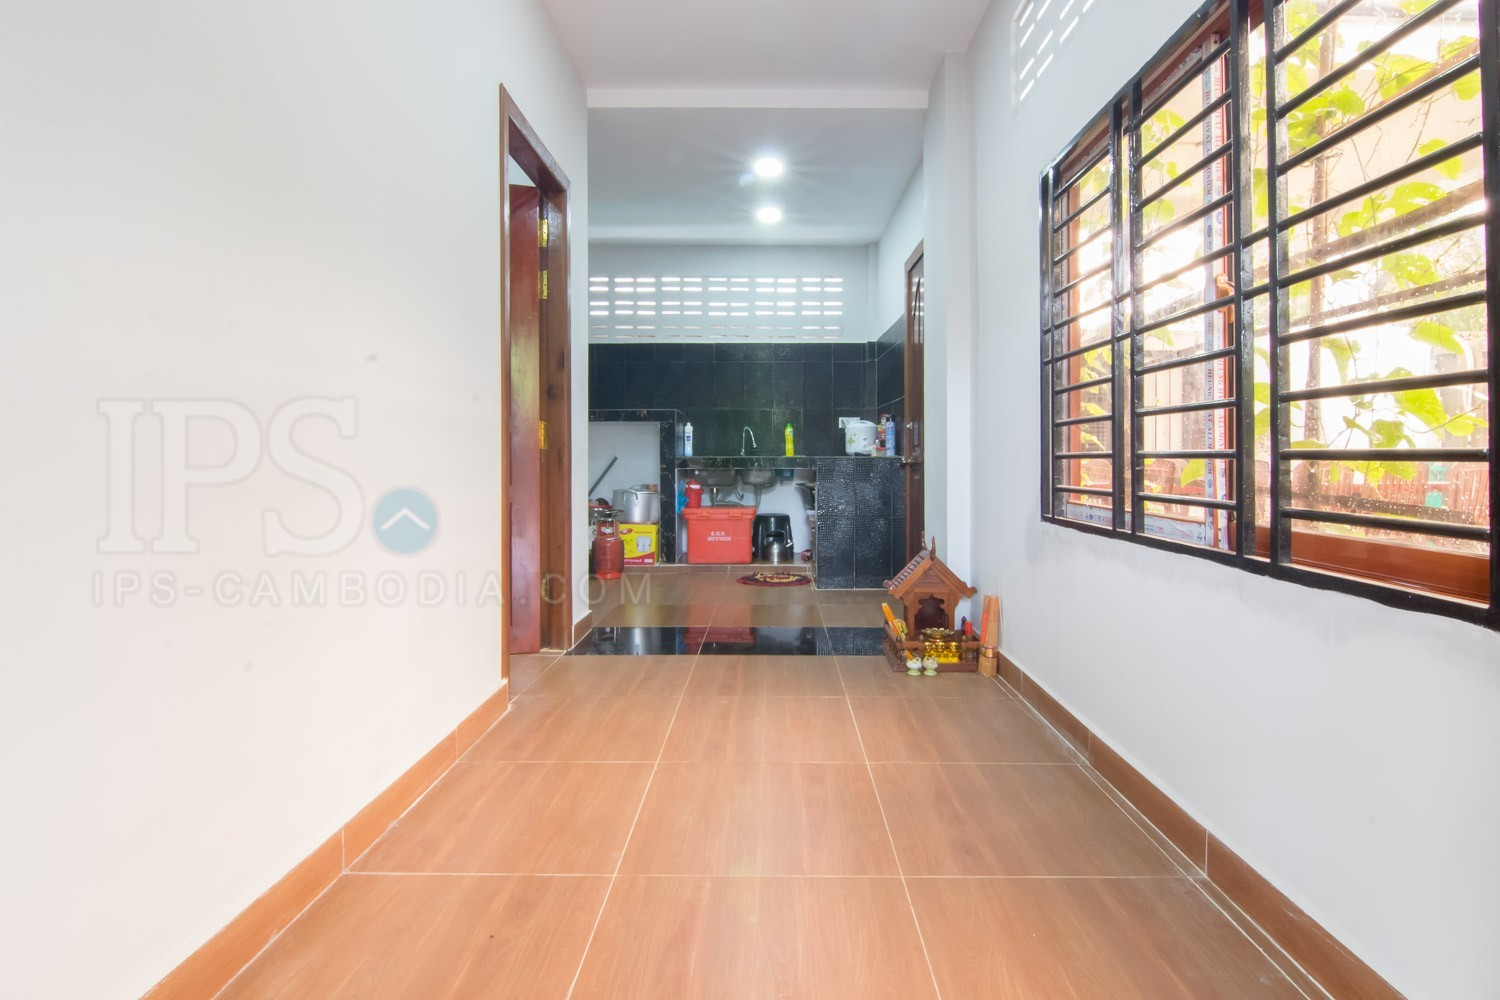 3 Bedroom House For Rent - Svay Dangkum, Siem Reap